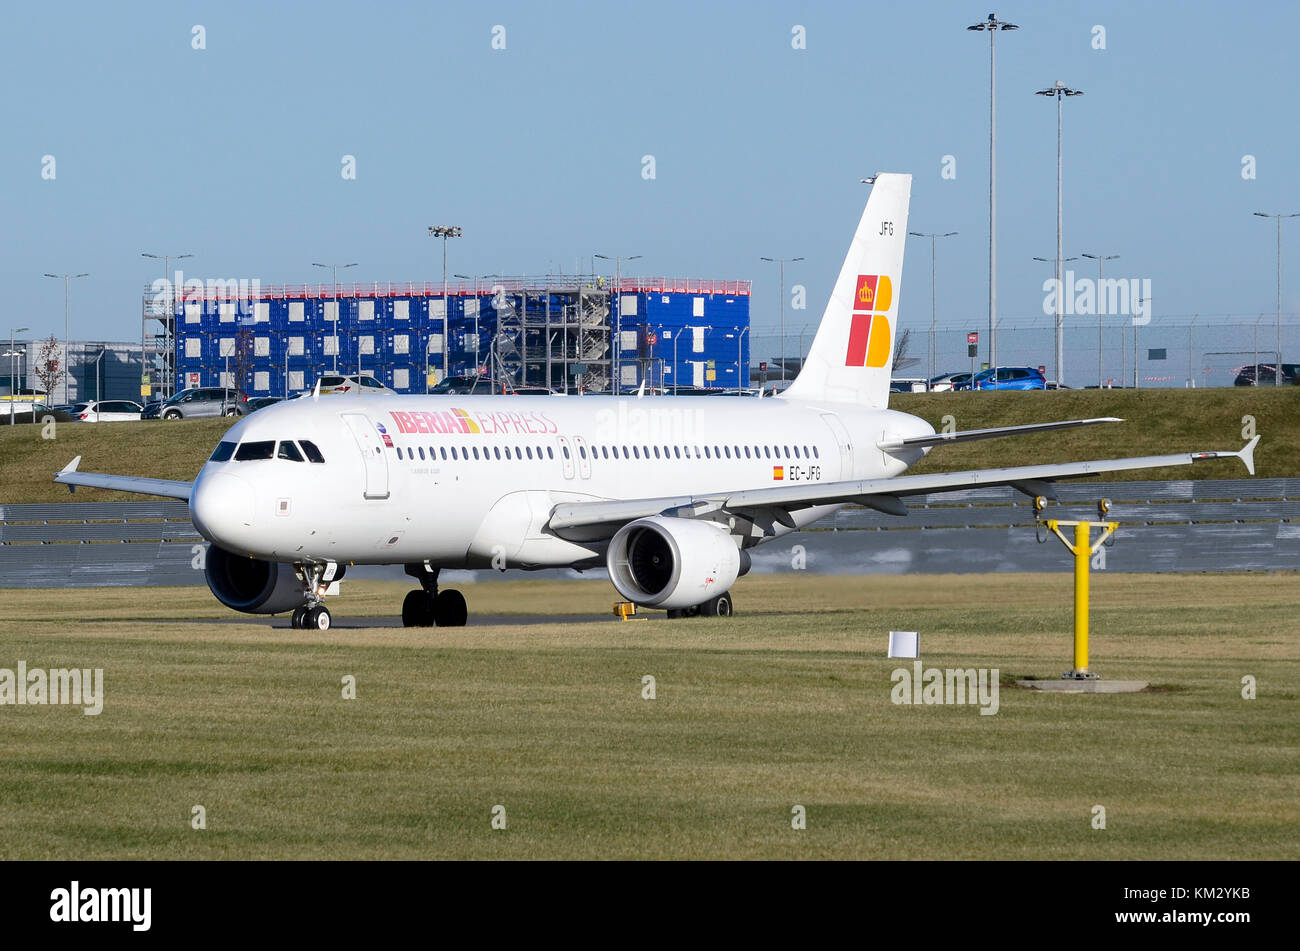 Airbus A320, Iberia Express, Birmingham Airport, UK. Airbus A320-214 EC-JFG is seen taxiing to take-off. - Stock Image